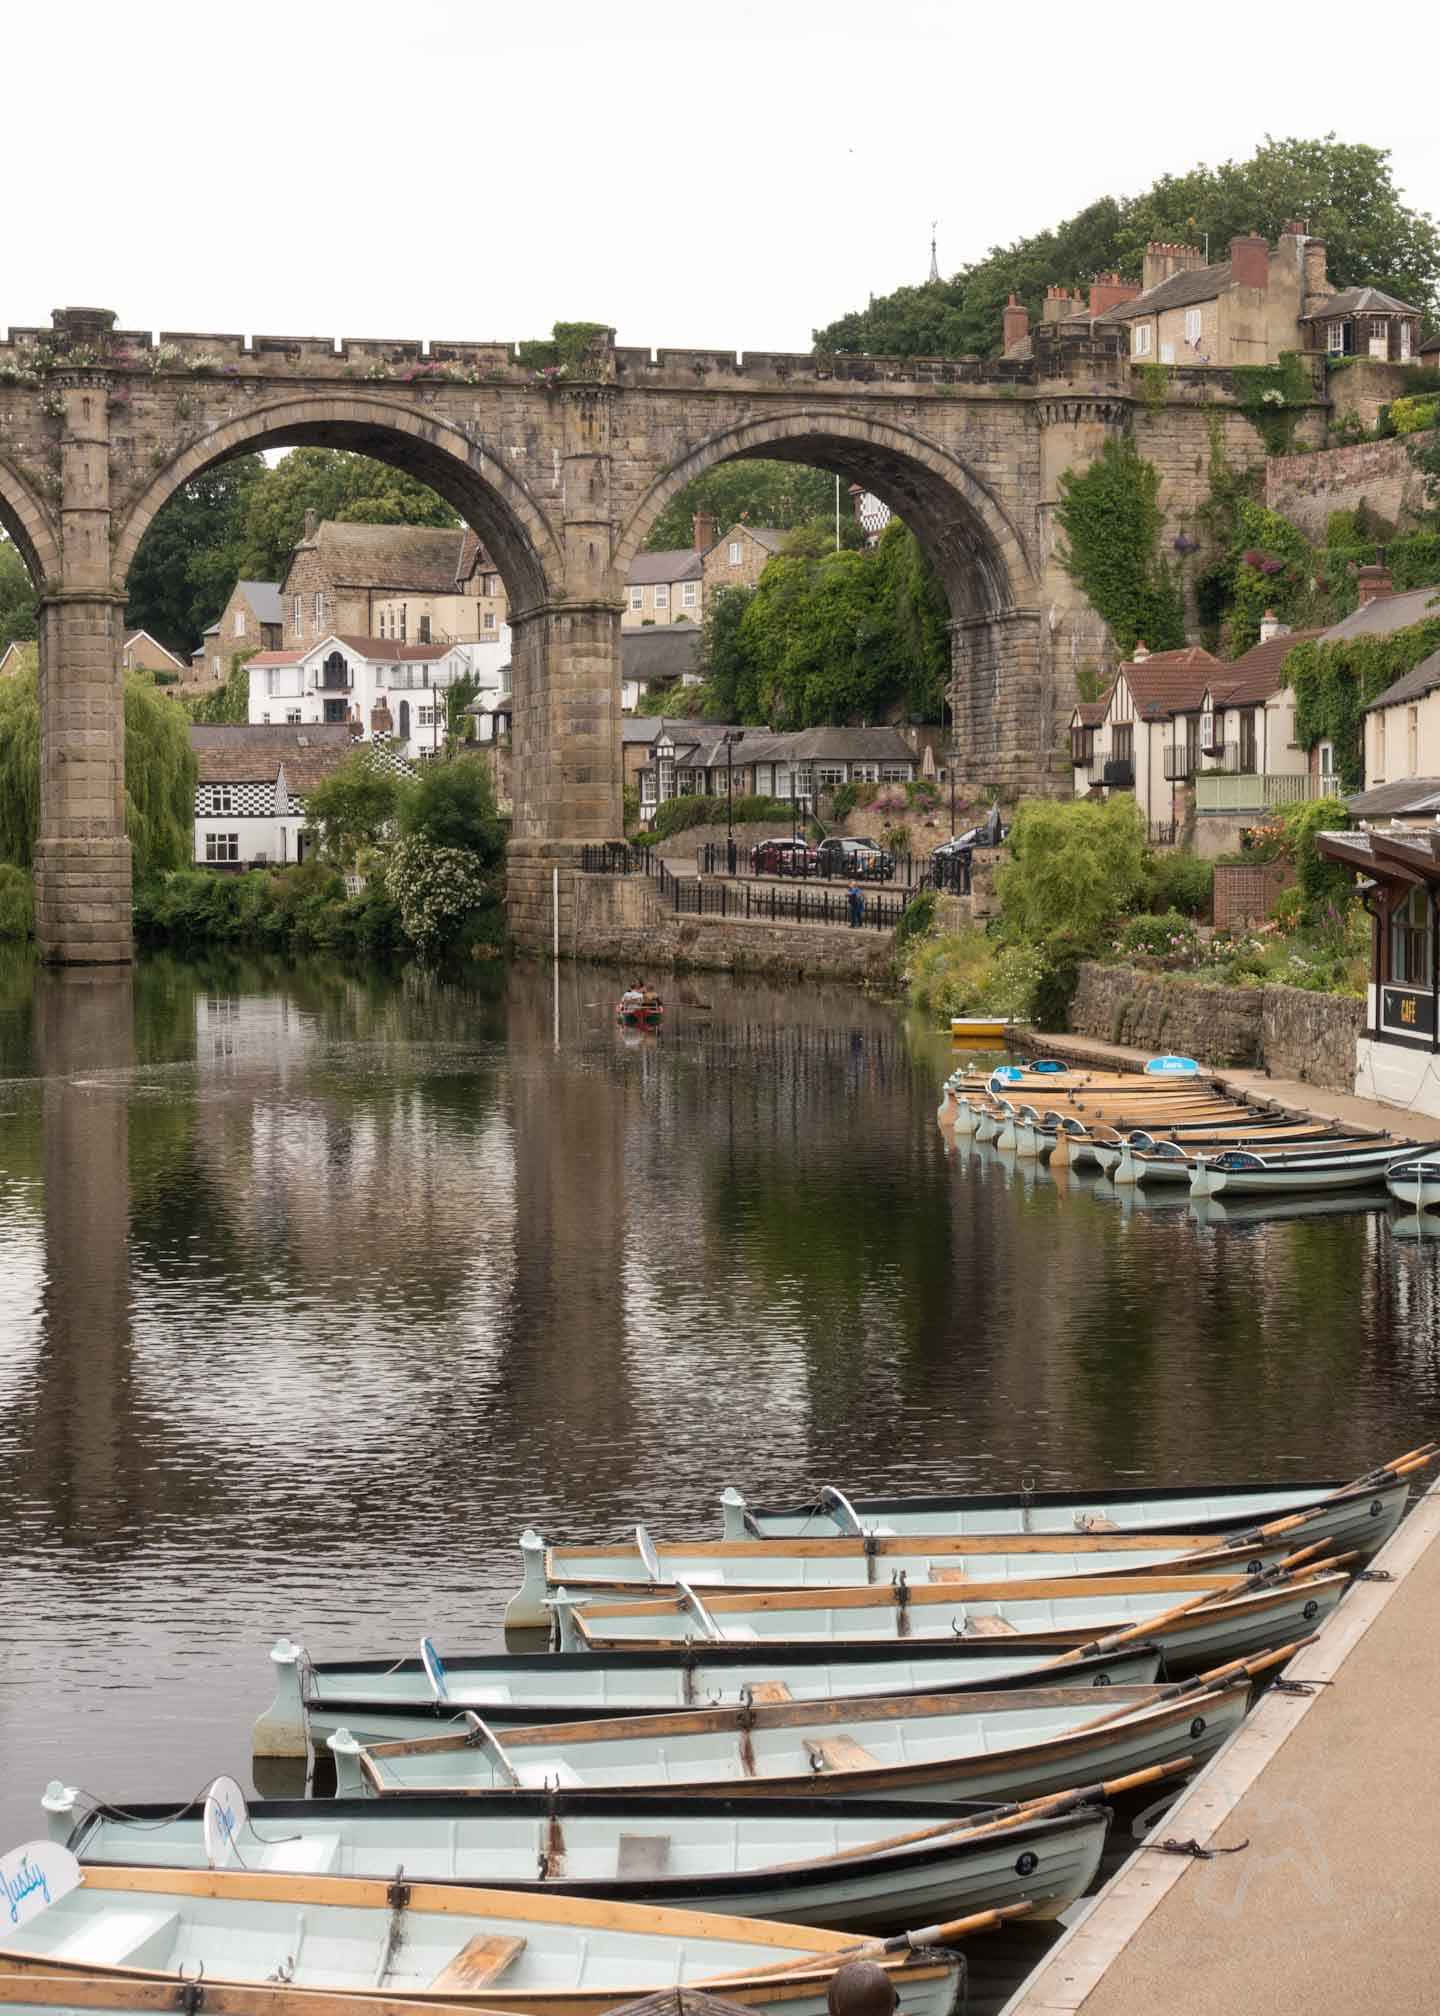 Visitor information for the river Nidd at Knaresborough Waterside in North Yorkshire. See the rowing boats and use these repeating pattern photo composition tips. Visit Knaresborough Waterside and try Repeating Pattern Photo Composition on Falcondale Life blog. Image description: Rowing boats and the viaduct at Knaresborough.